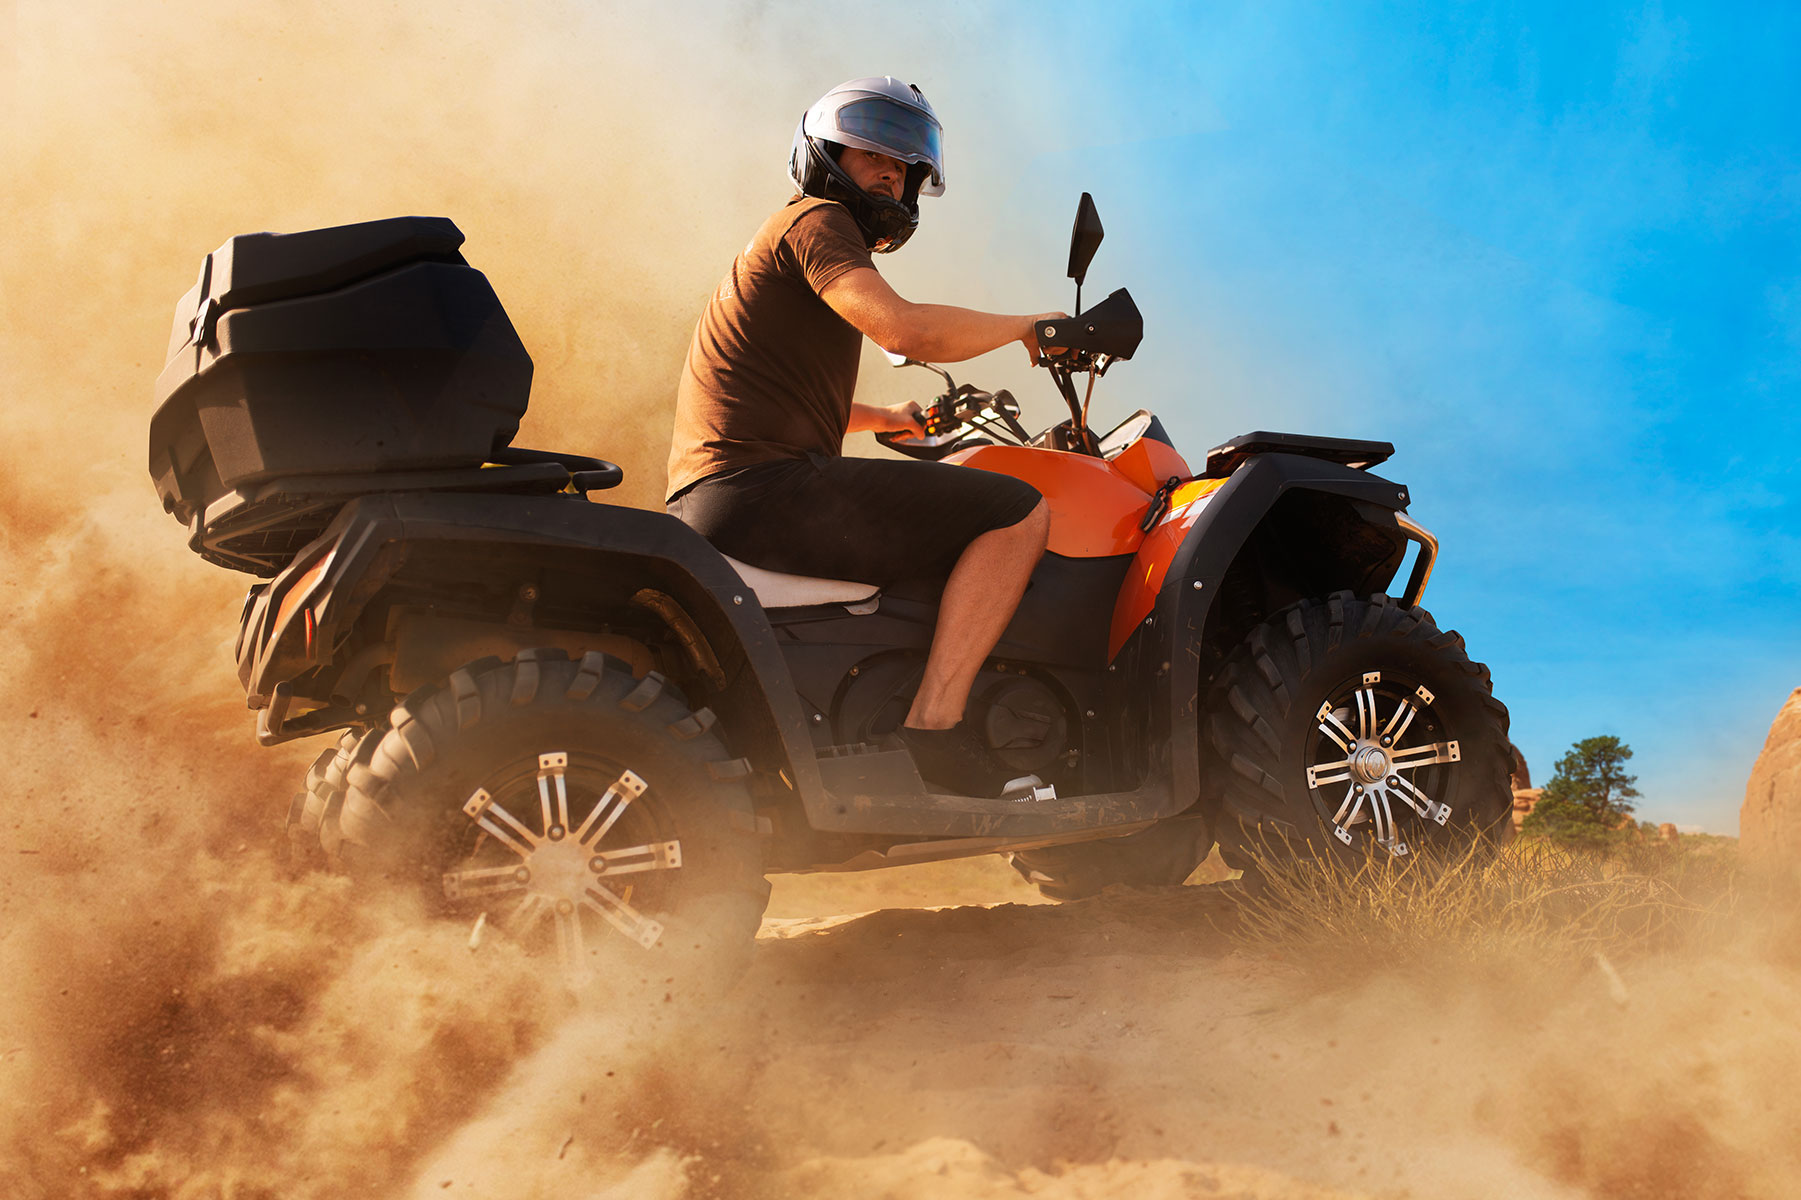 guy riding ATV in a plum of dust